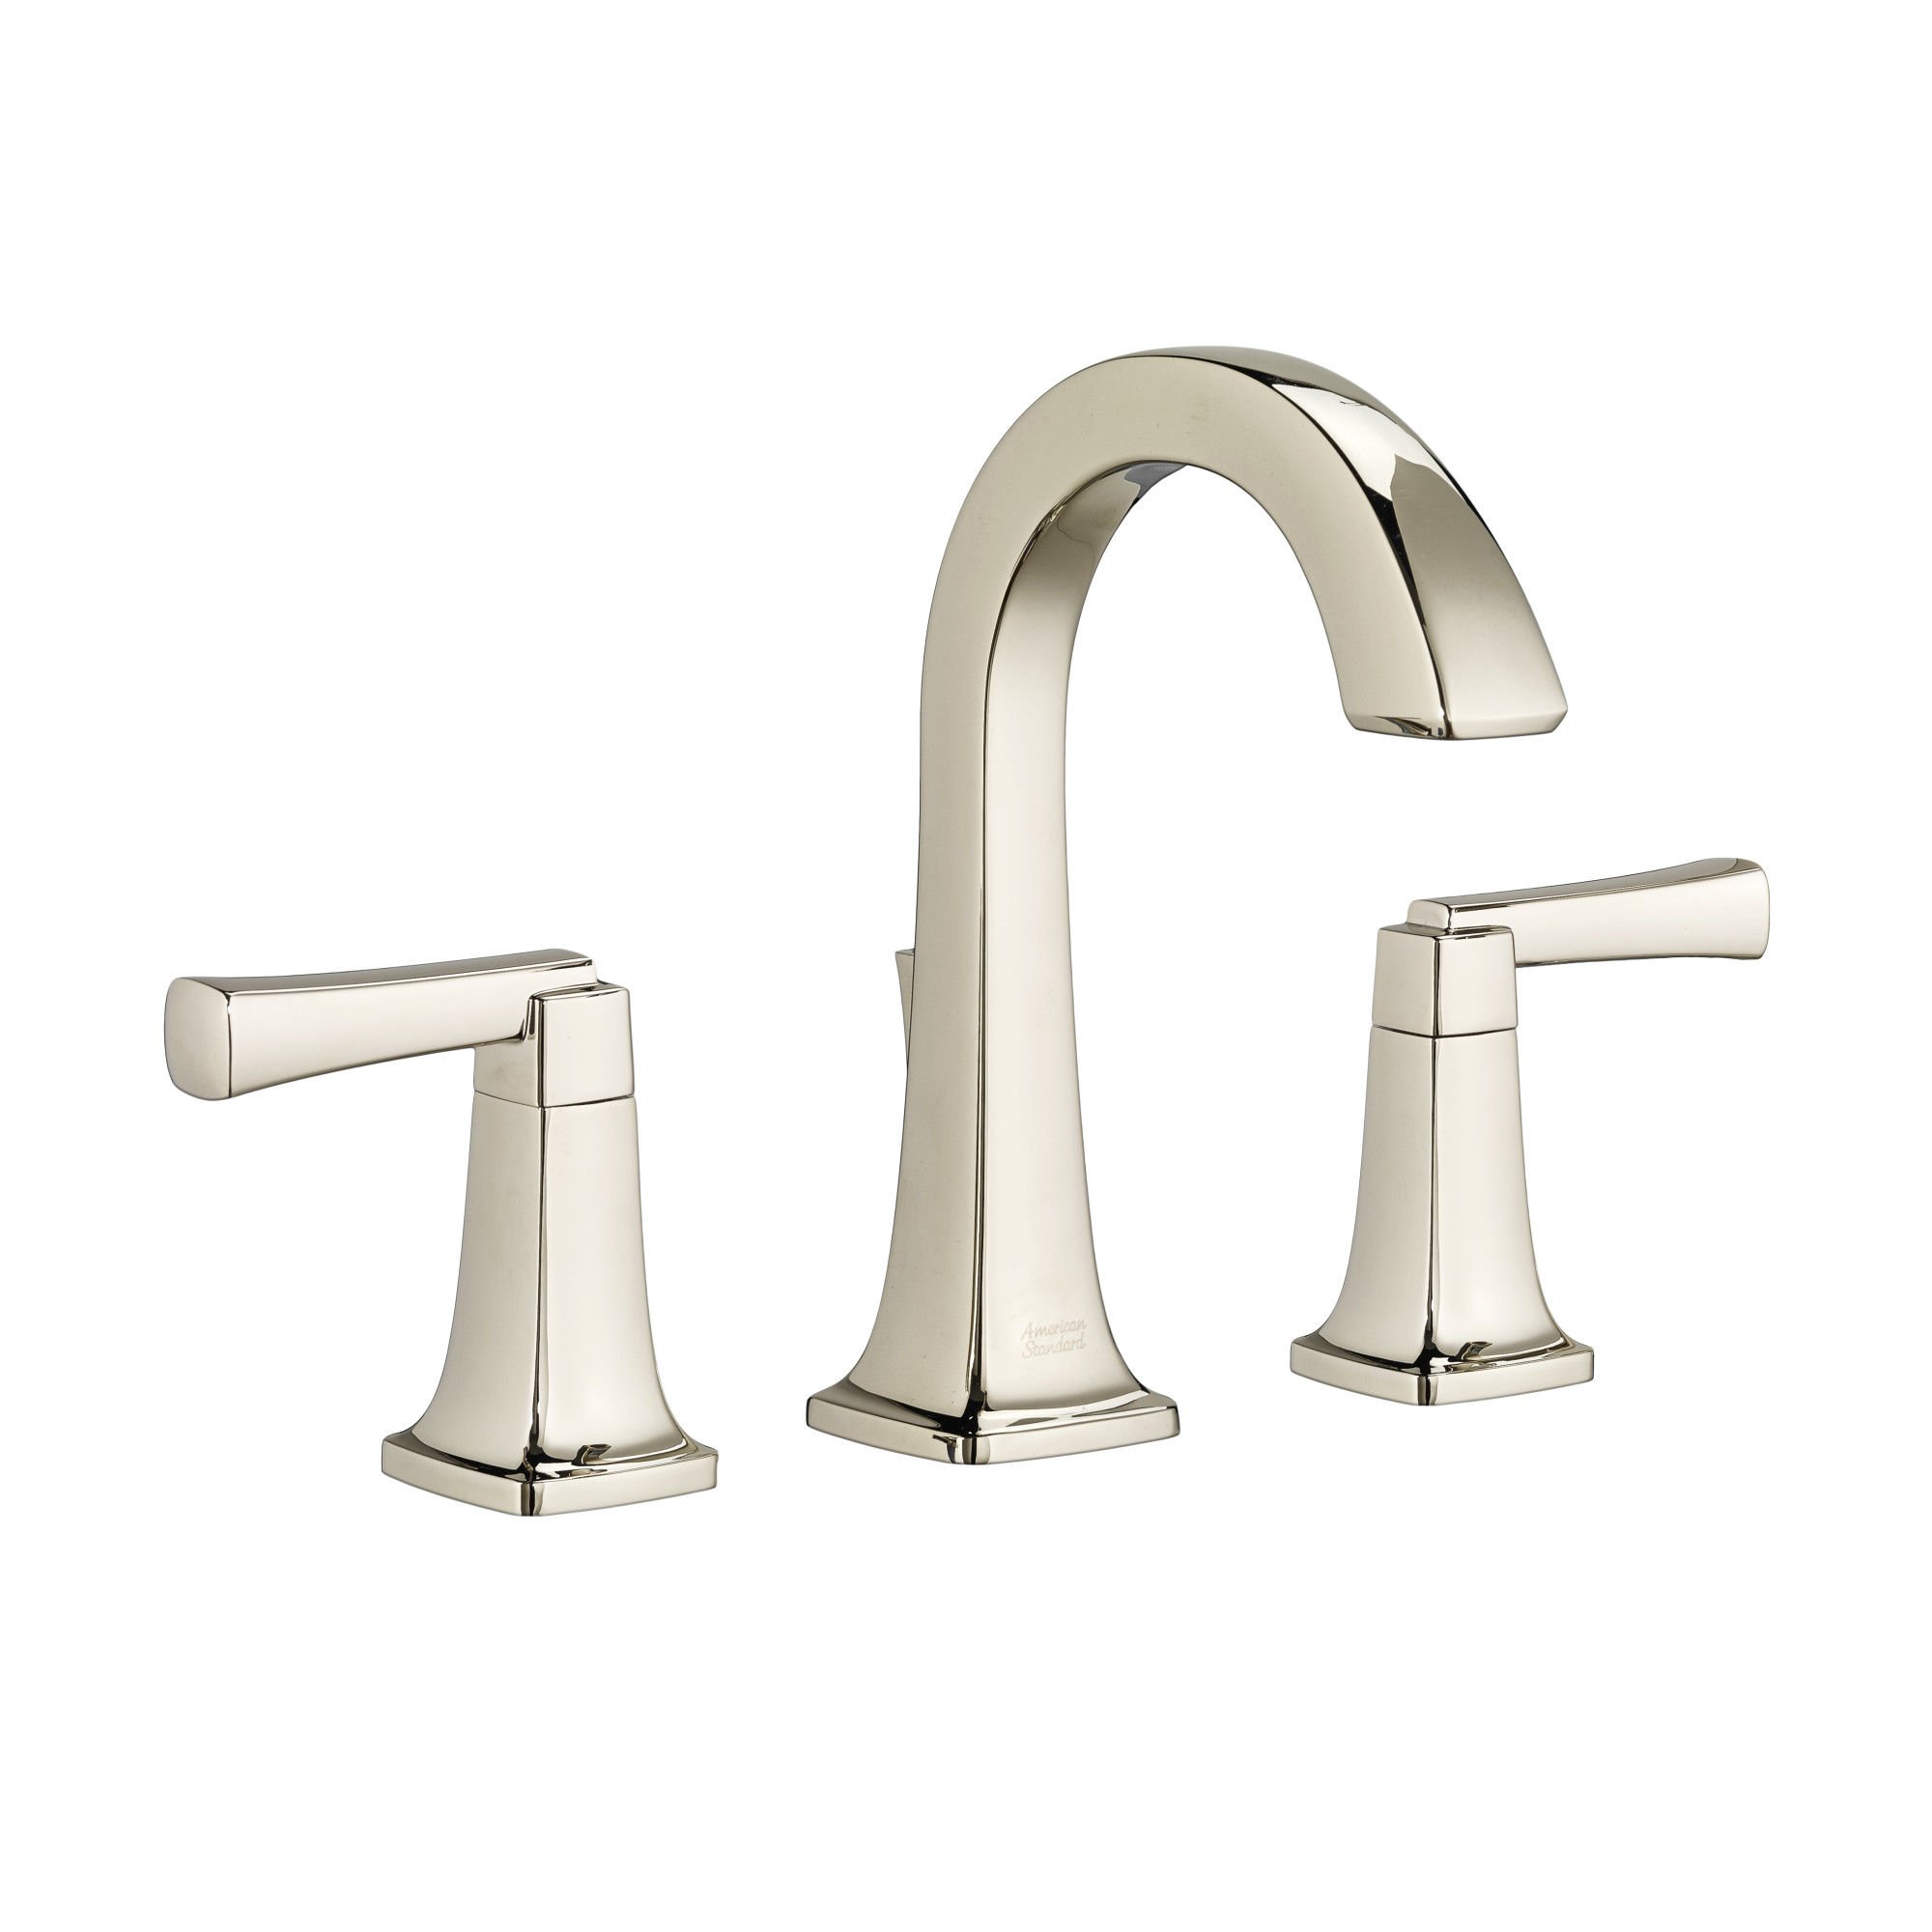 faucet hydrants products packing faucets series stem and residential hydrant gasket wall